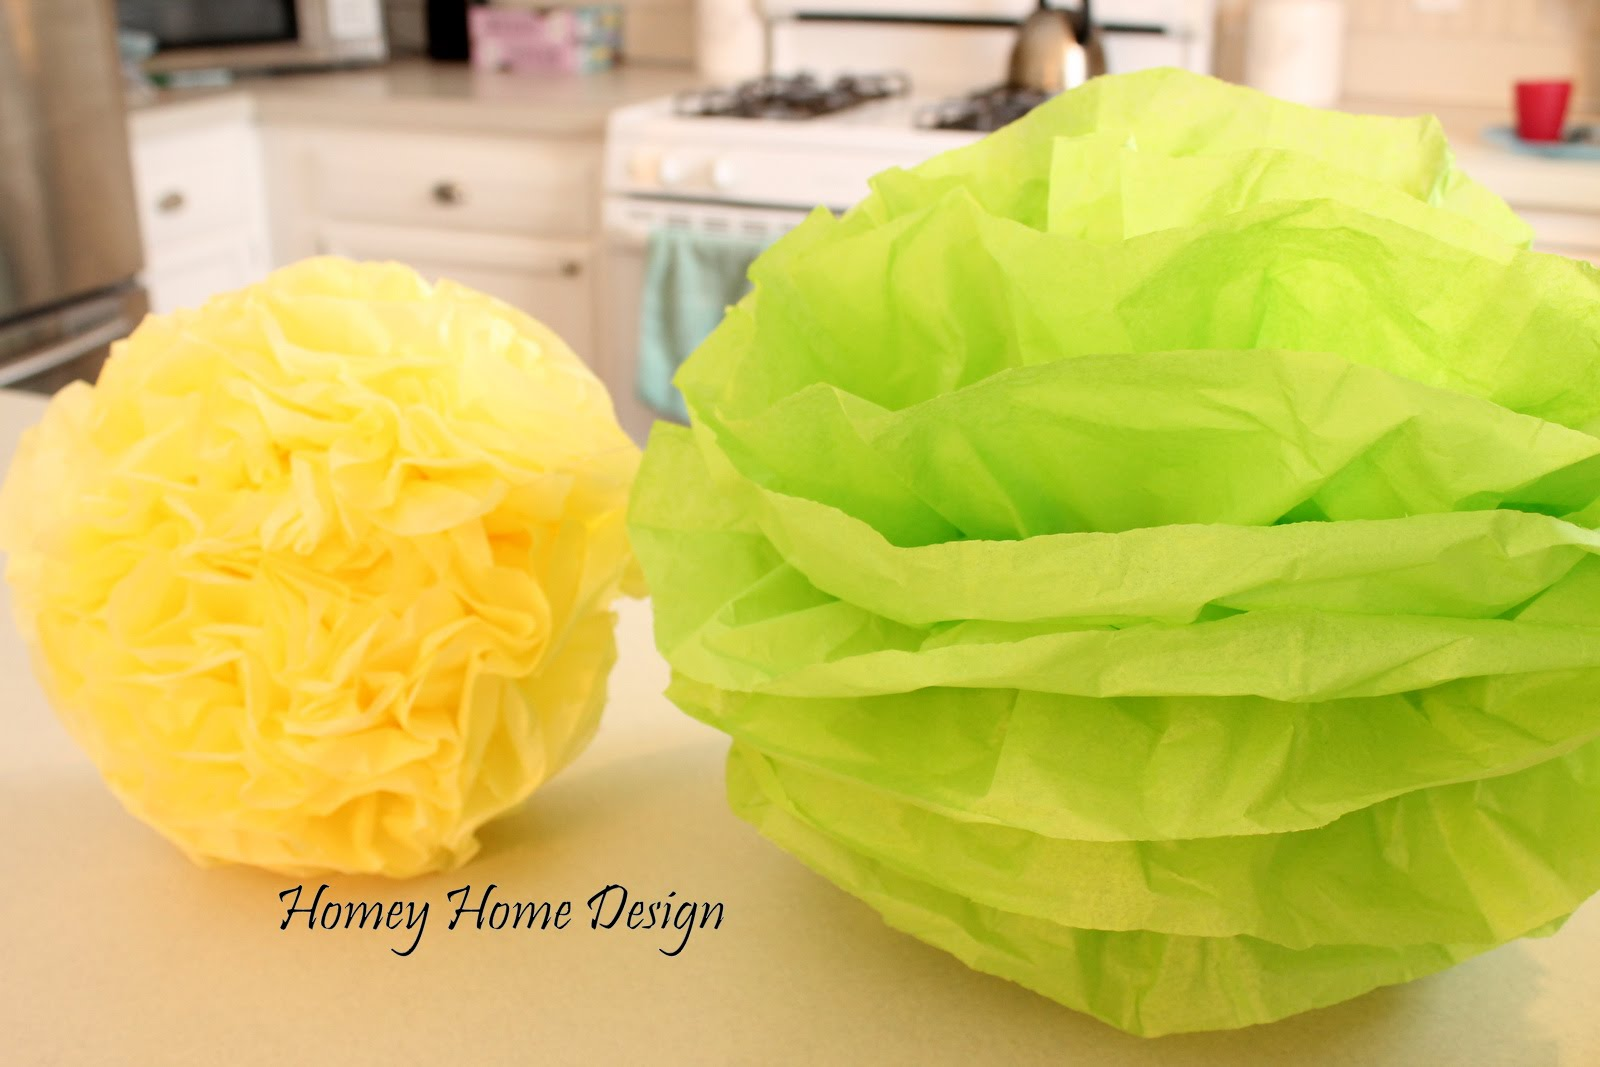 Homey Home Design Tissue Paper Puff Balls